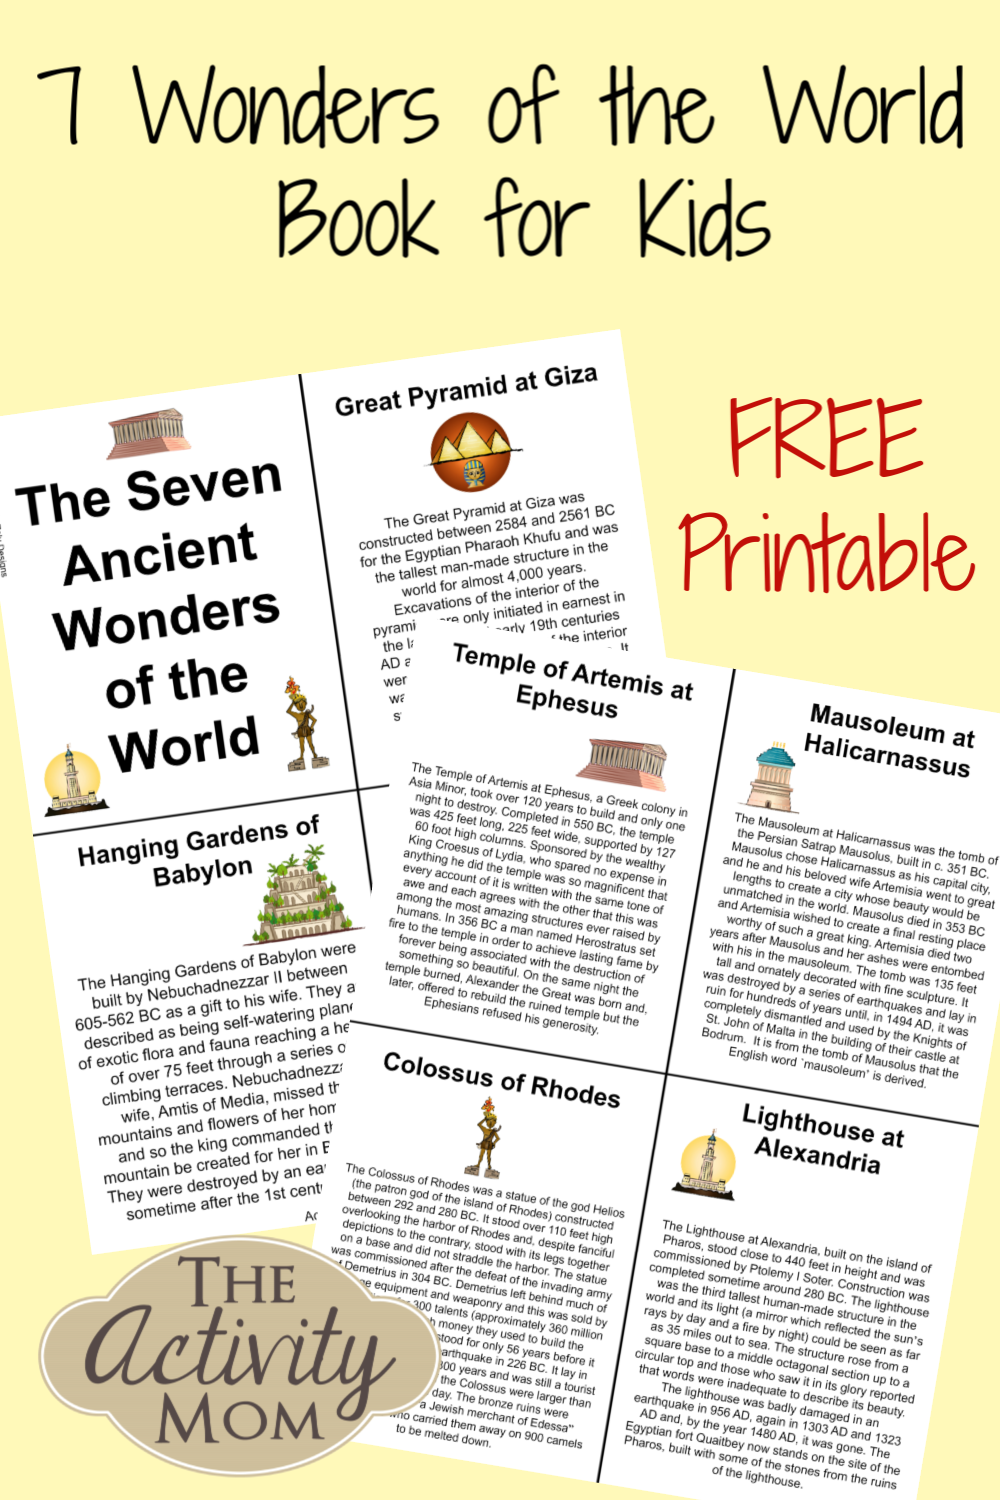 7 Wonders Of The World Book For Kids The Activity Mom Printable Activities For Kids Wonders Of The World Geography For Kids [ 1500 x 1000 Pixel ]